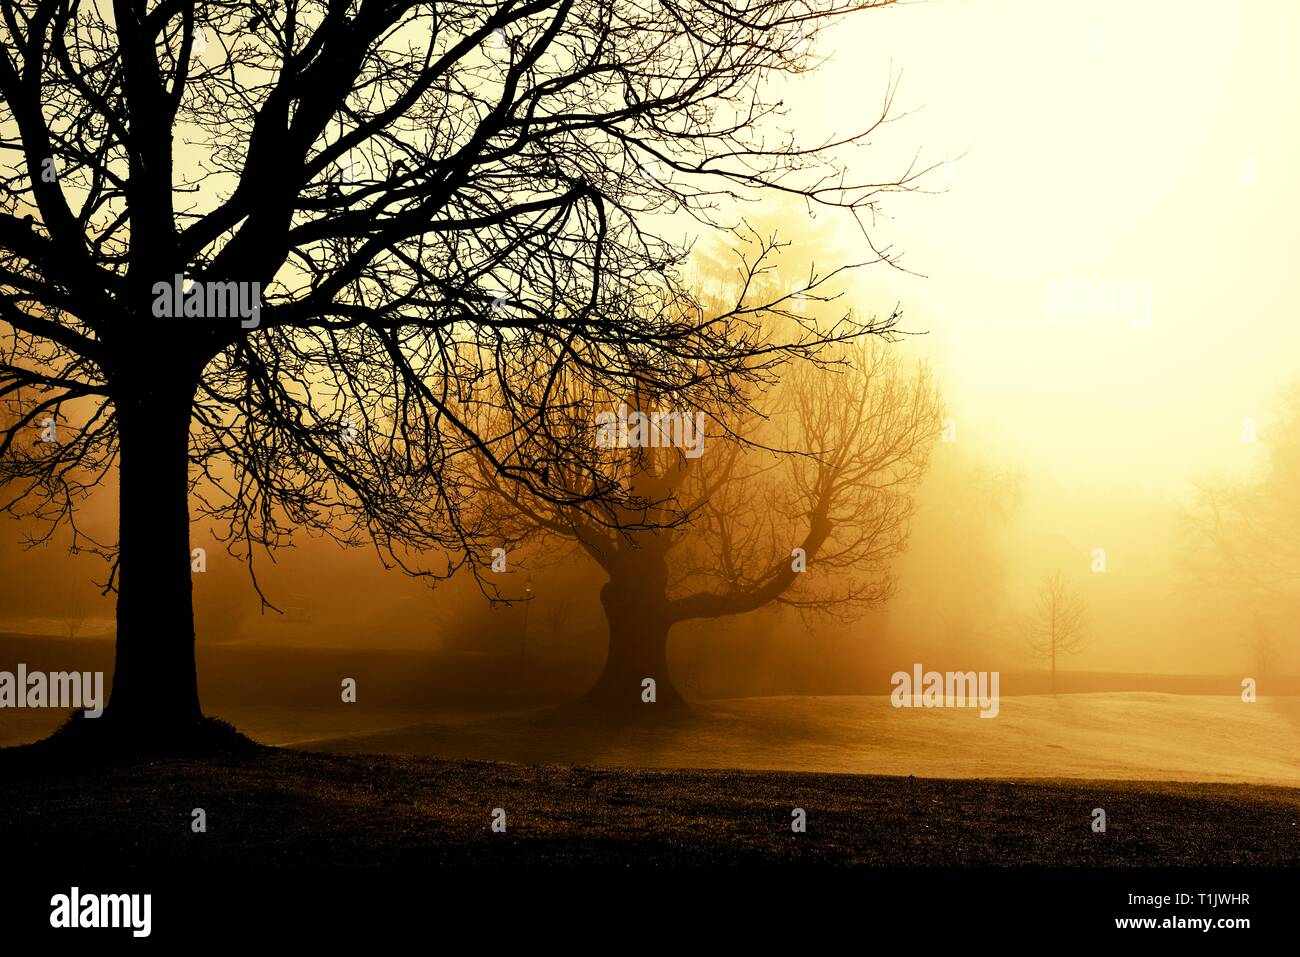 A misty morning in. Glebe park,Bowness on Windermere,Lake District,Cumbria,England,UK Stock Photo